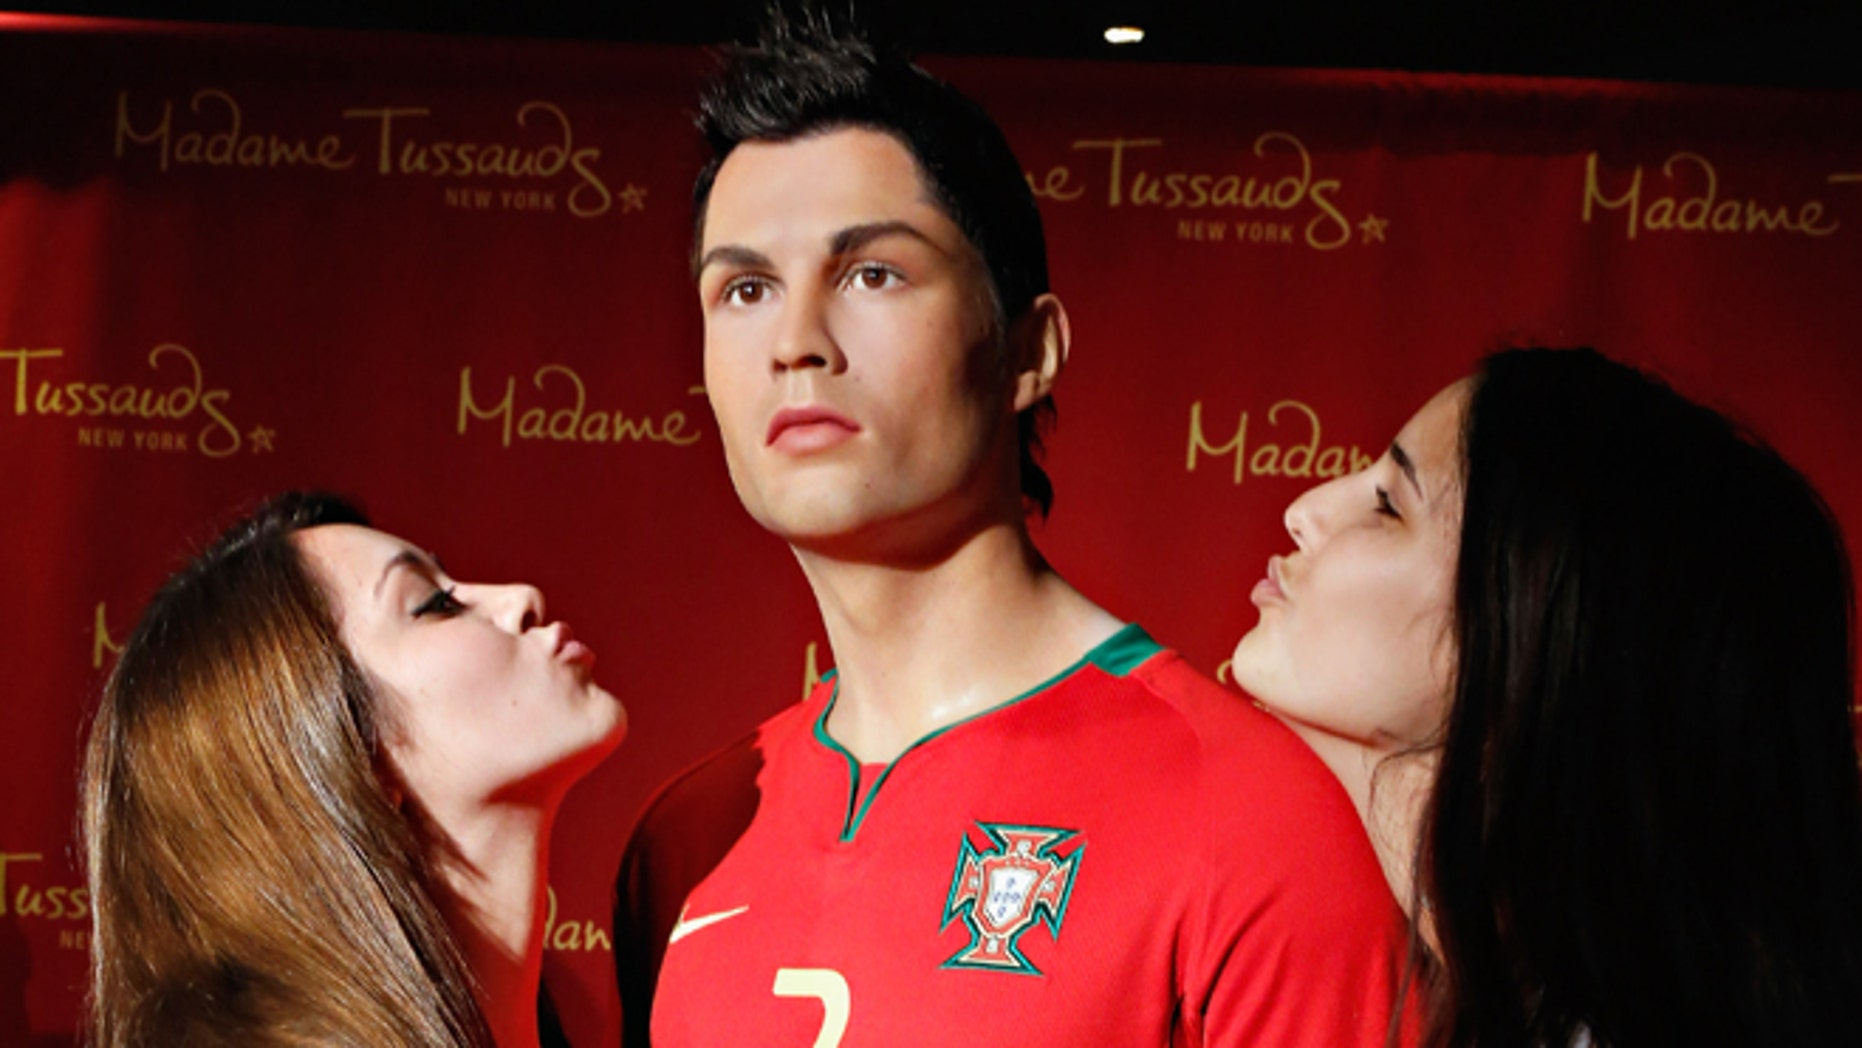 Fans get close to the Cristiano Ronaldo wax figure at Madame Tussauds in New York City.  (Photo by Cindy Ord/Getty Images for Madame Tussauds New York)